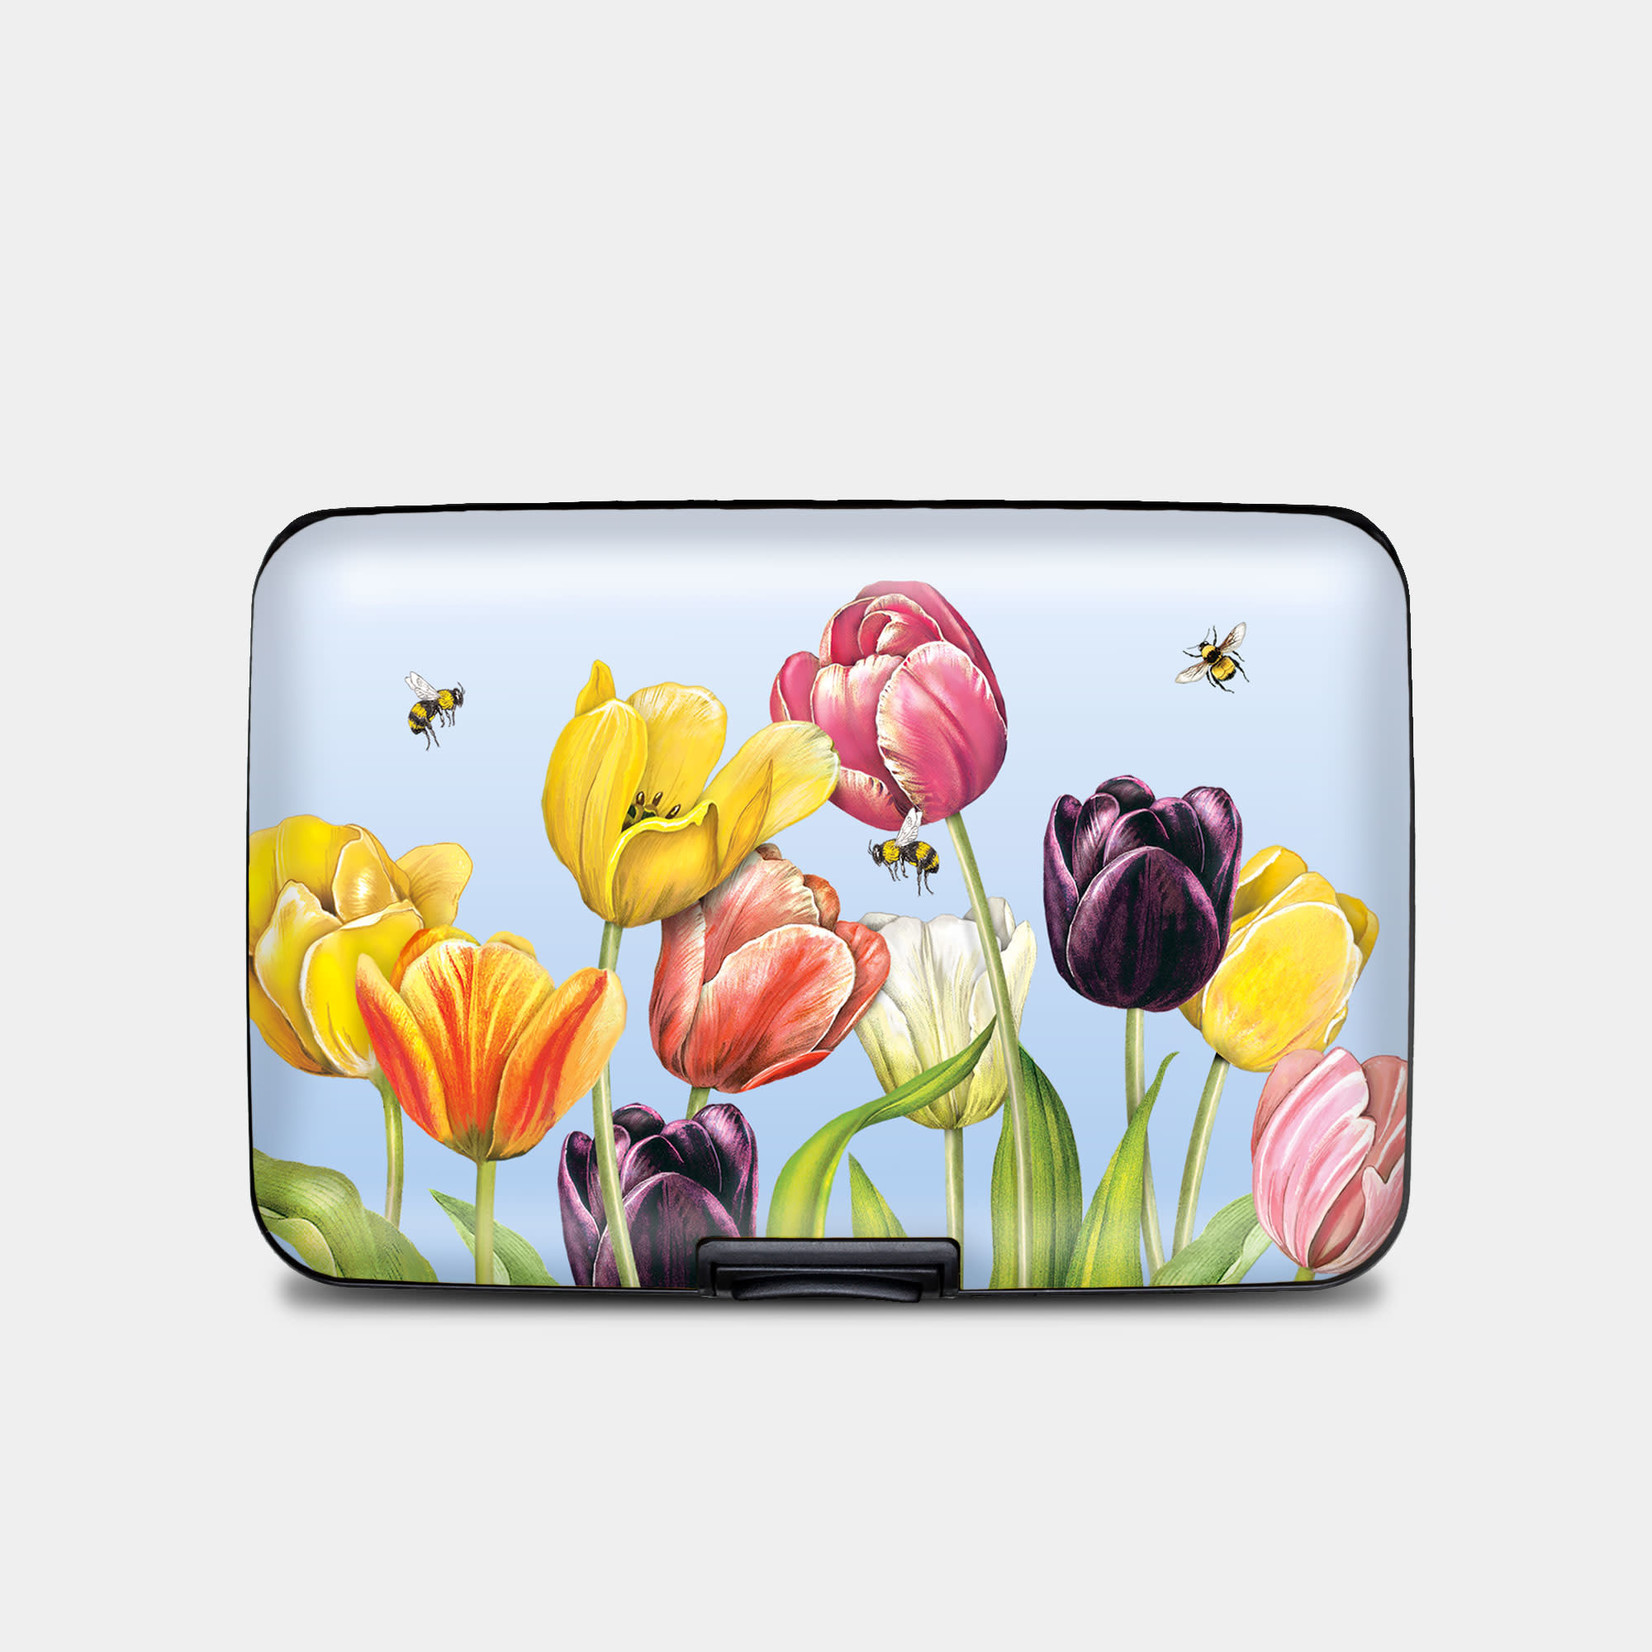 Monarque Armored Wallet - Mary Lake - Thompson Tulips